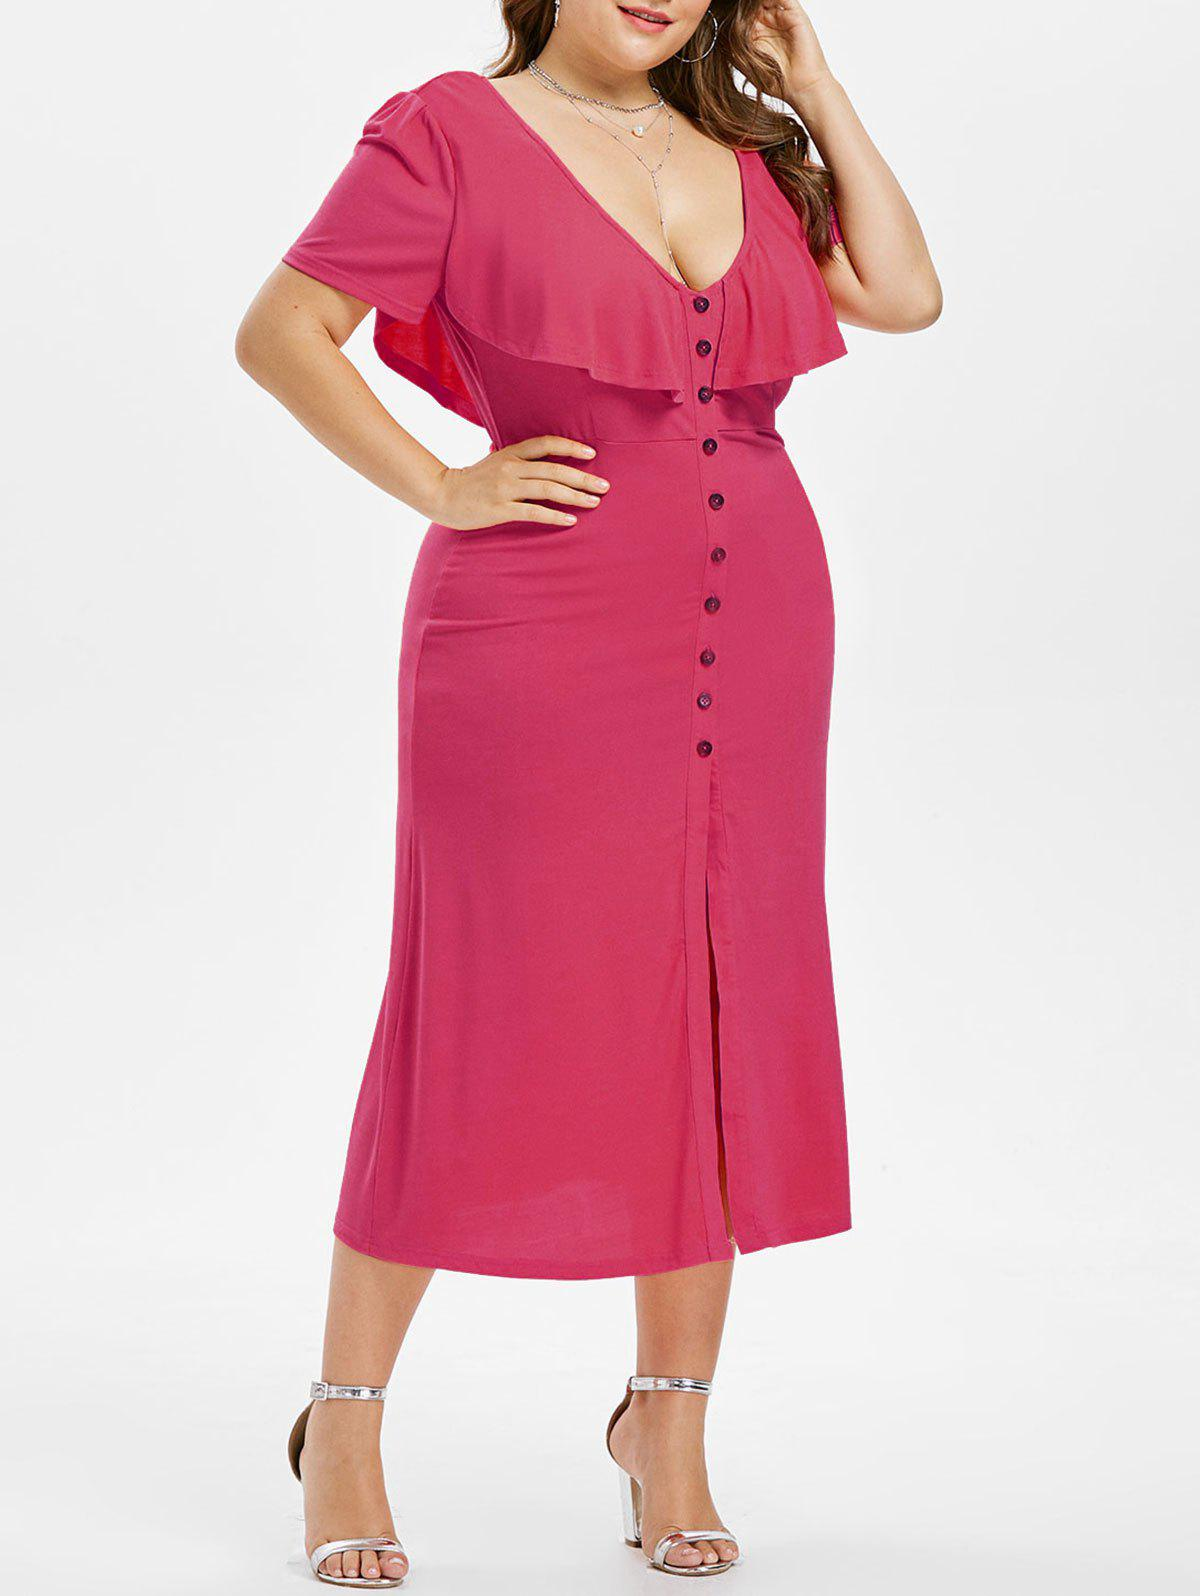 Plus Size Criss Cross Button Dress - ROSE RED 4X